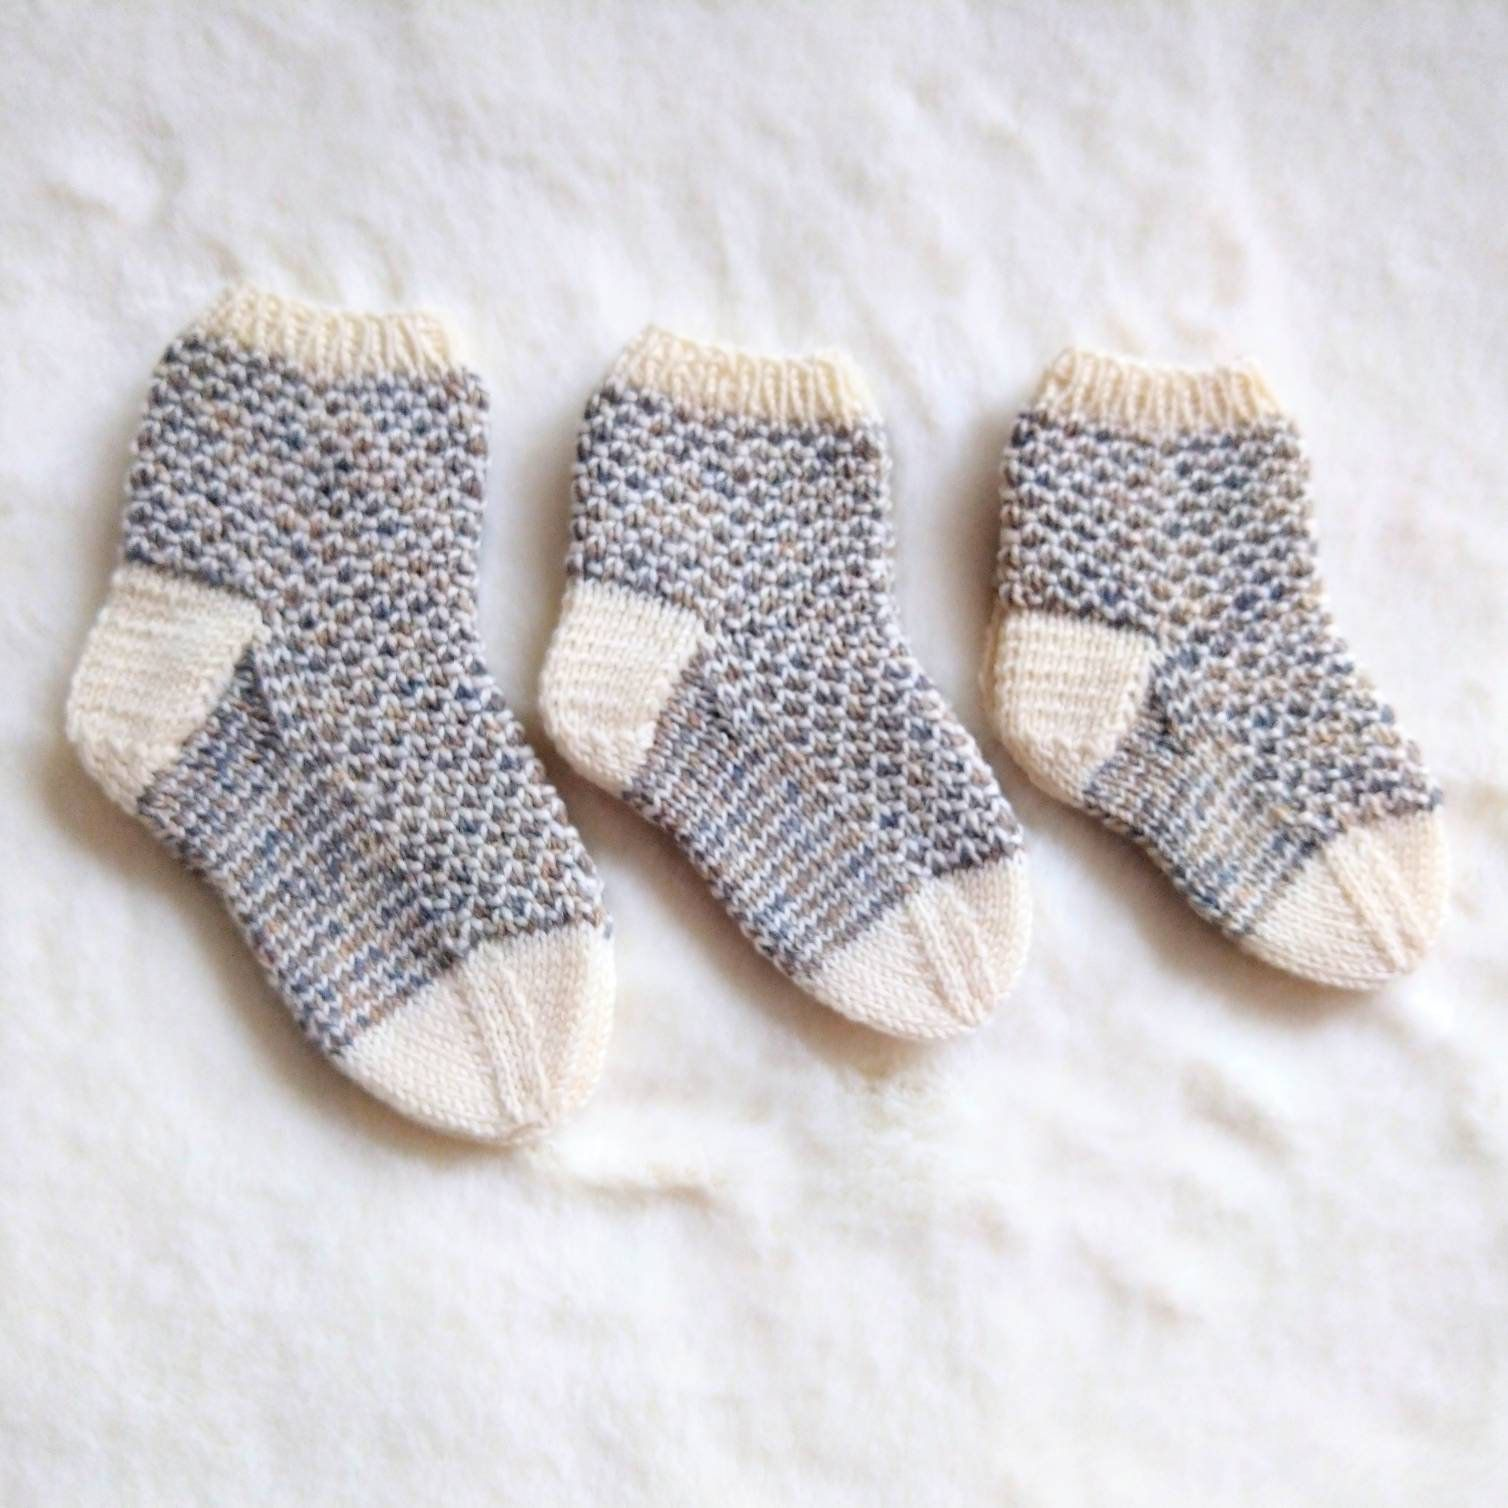 SOFT BABY KNITTED Booties Boot Socks Newborn Infant Unisex Baby Shower Gift